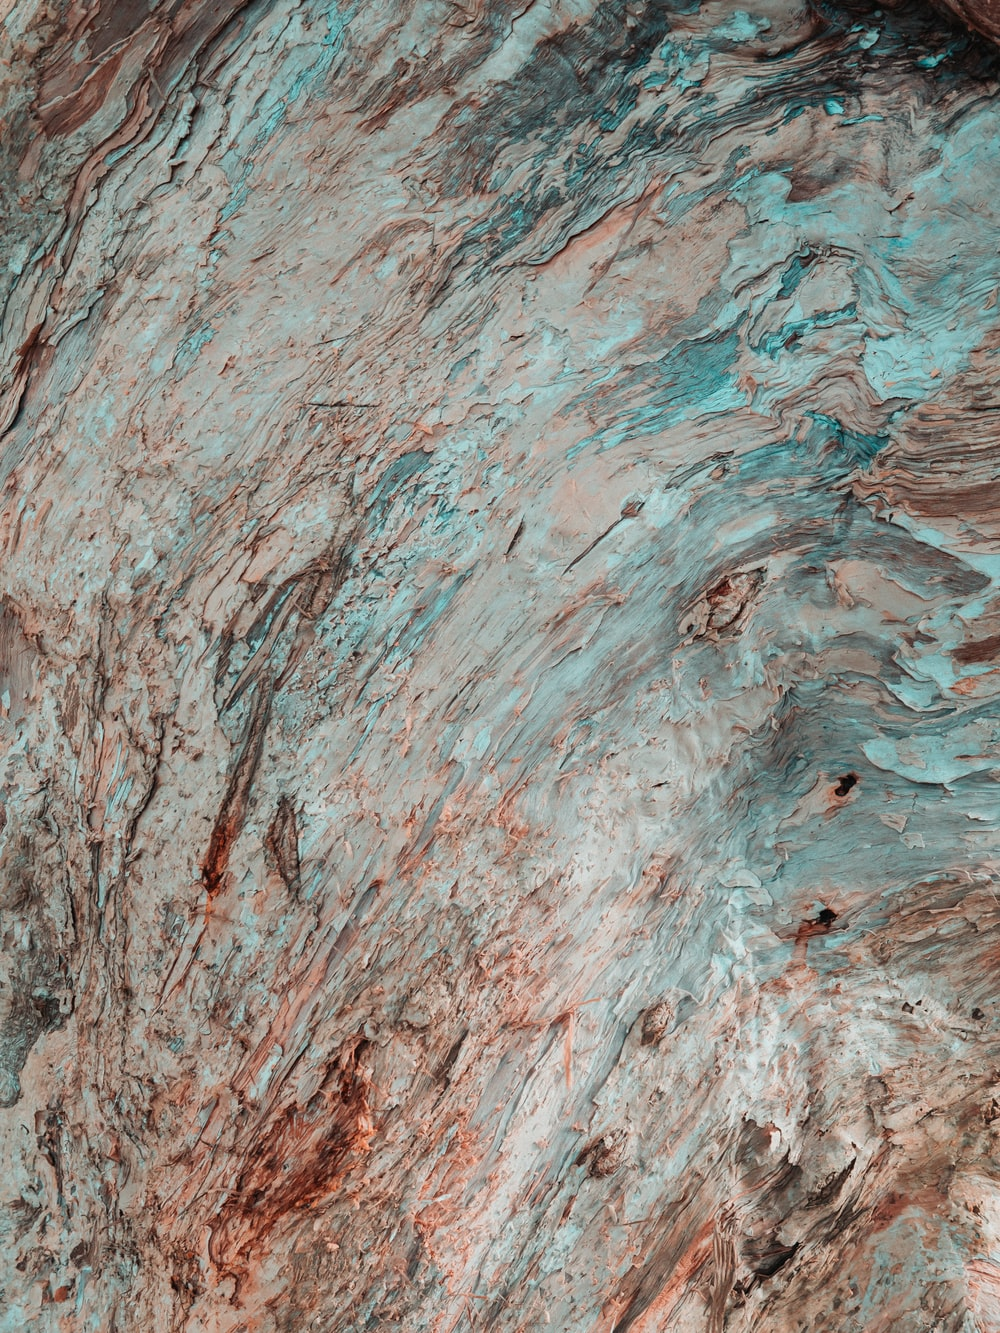 red and blue rock in closeup photo